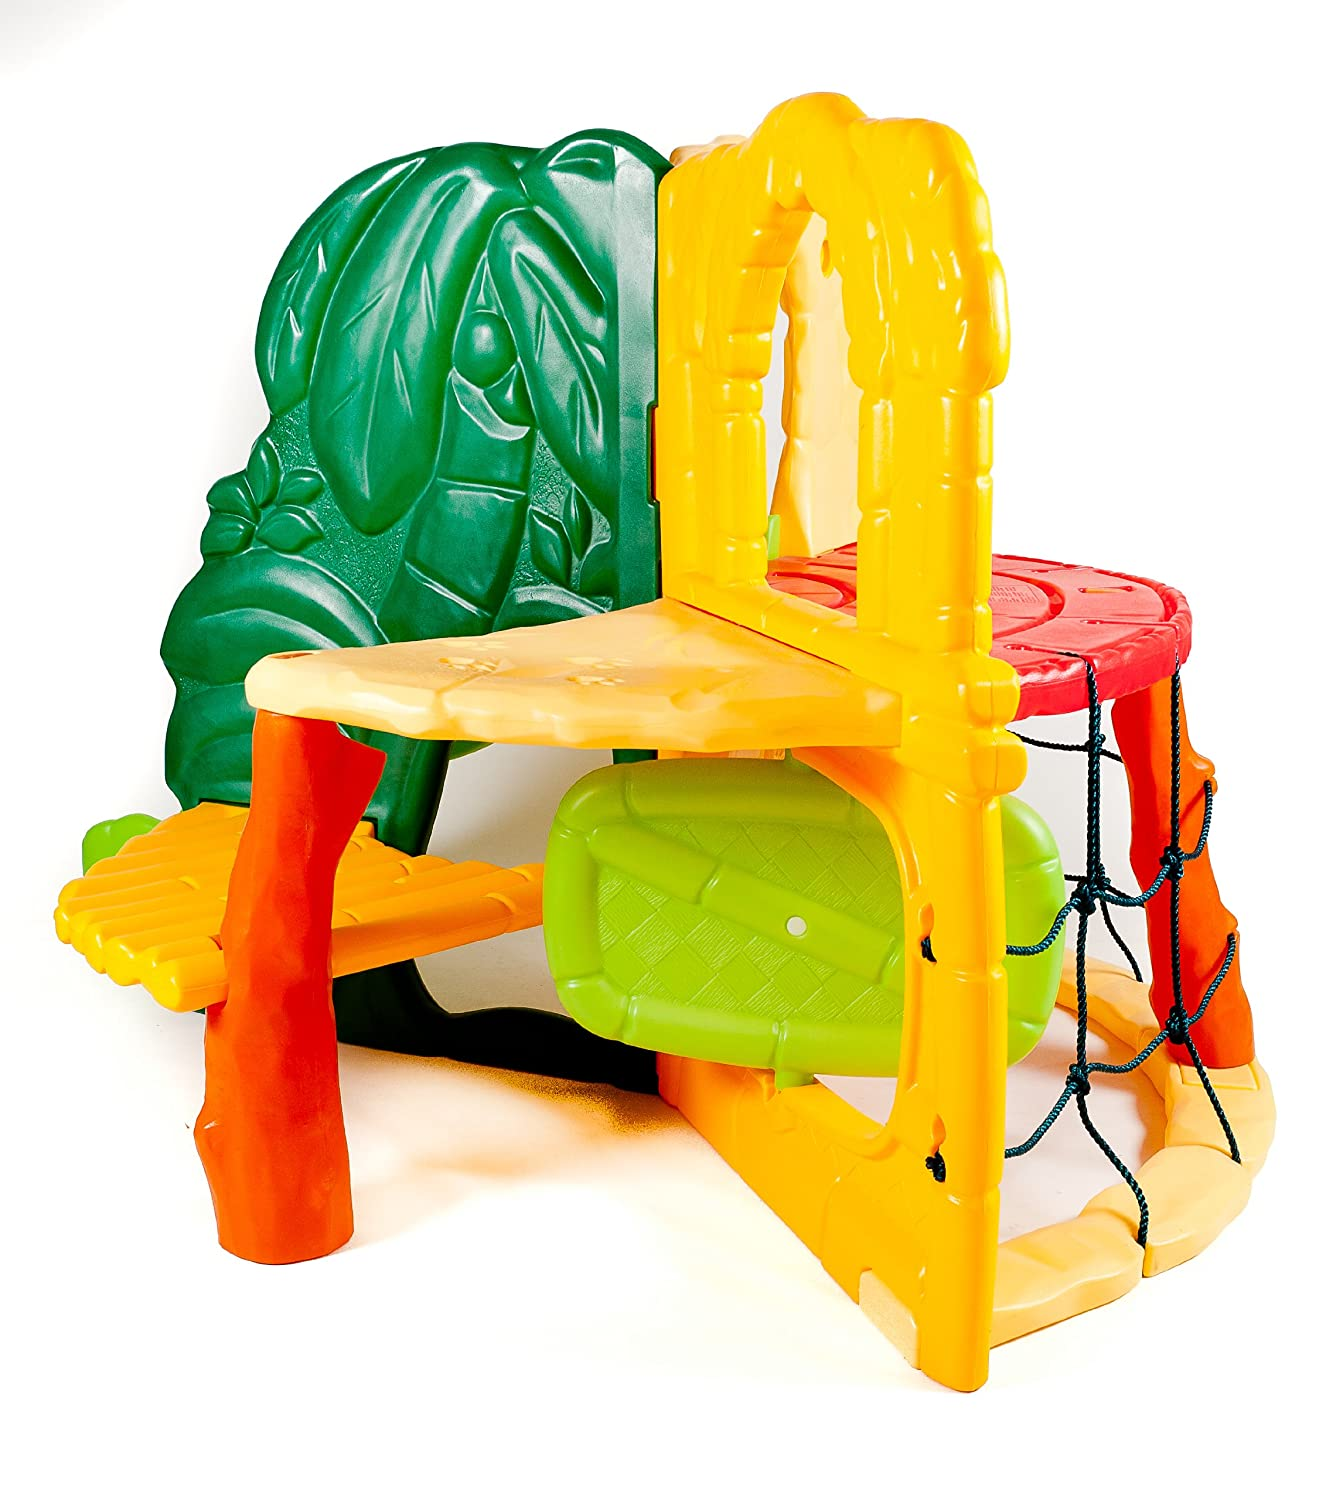 Little Tikes Jungle Climber - Little Tikes Kletterturm Dschungel